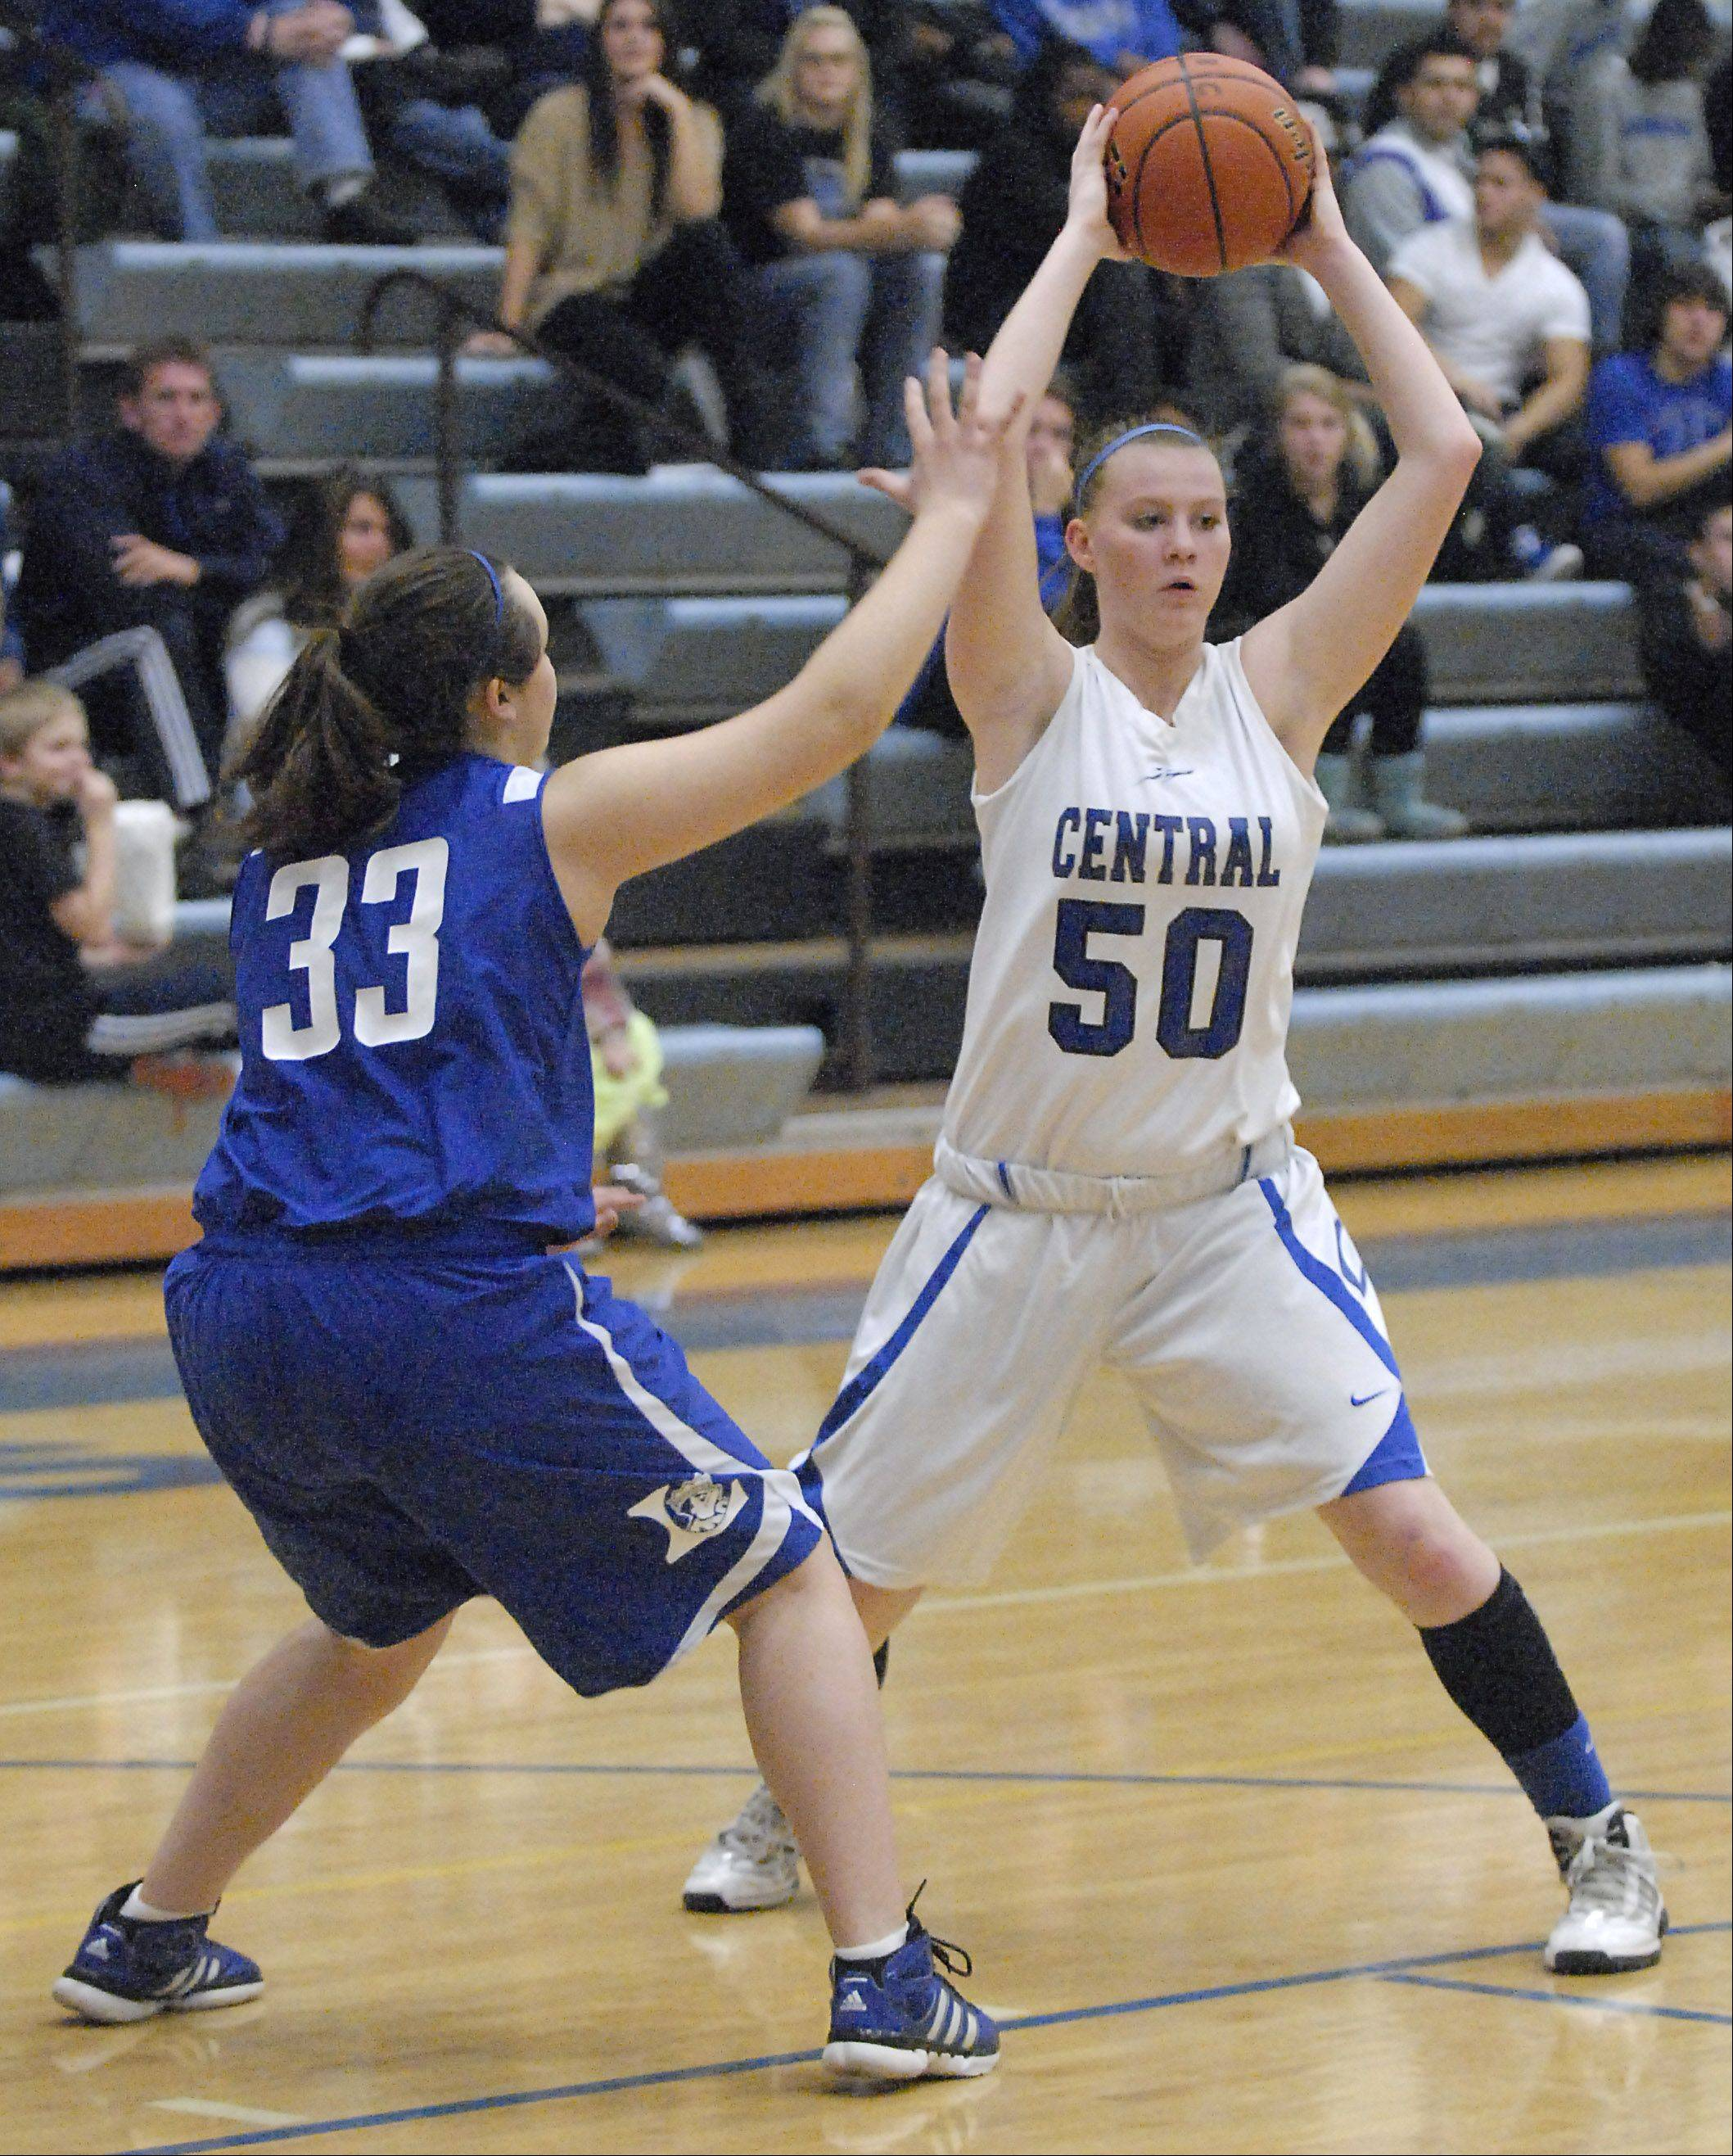 Larkin's Rachel Martinez attempts to block Burlington Central's Rebecca Gerke in the second quarter on Friday, November 16.